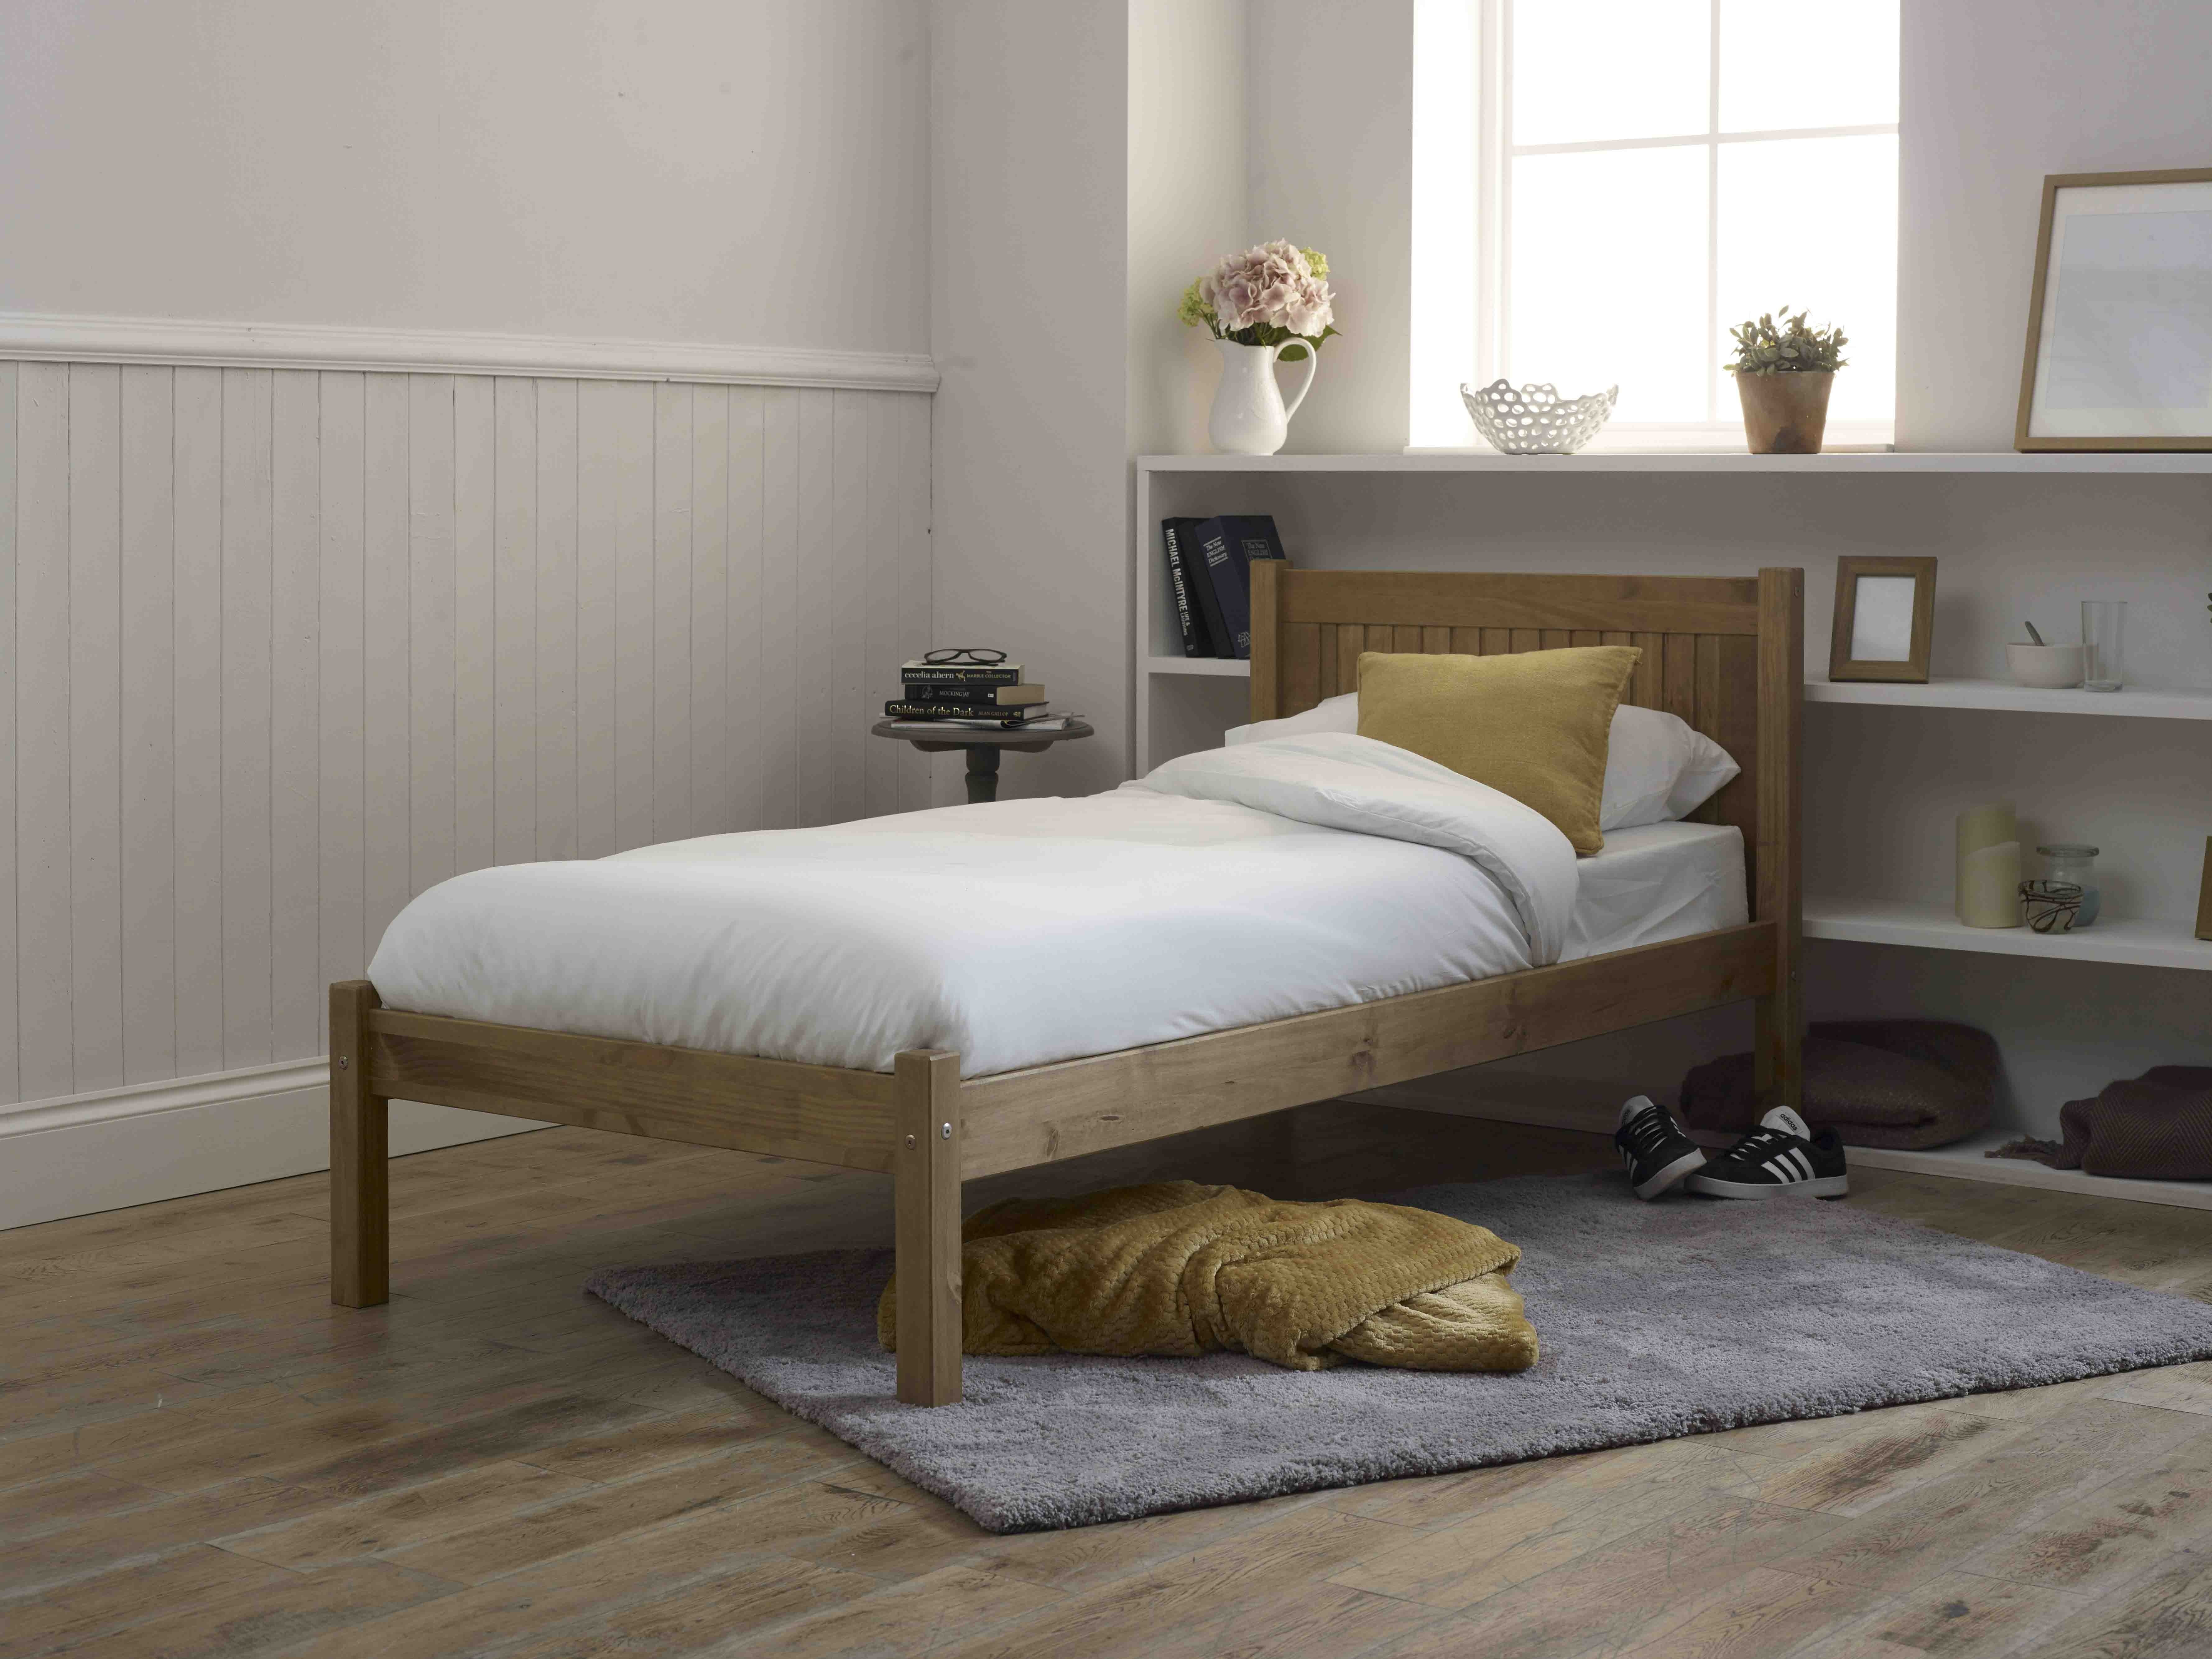 Capricorn Wooden Bed Frame Assembly Instructions (Limelight)